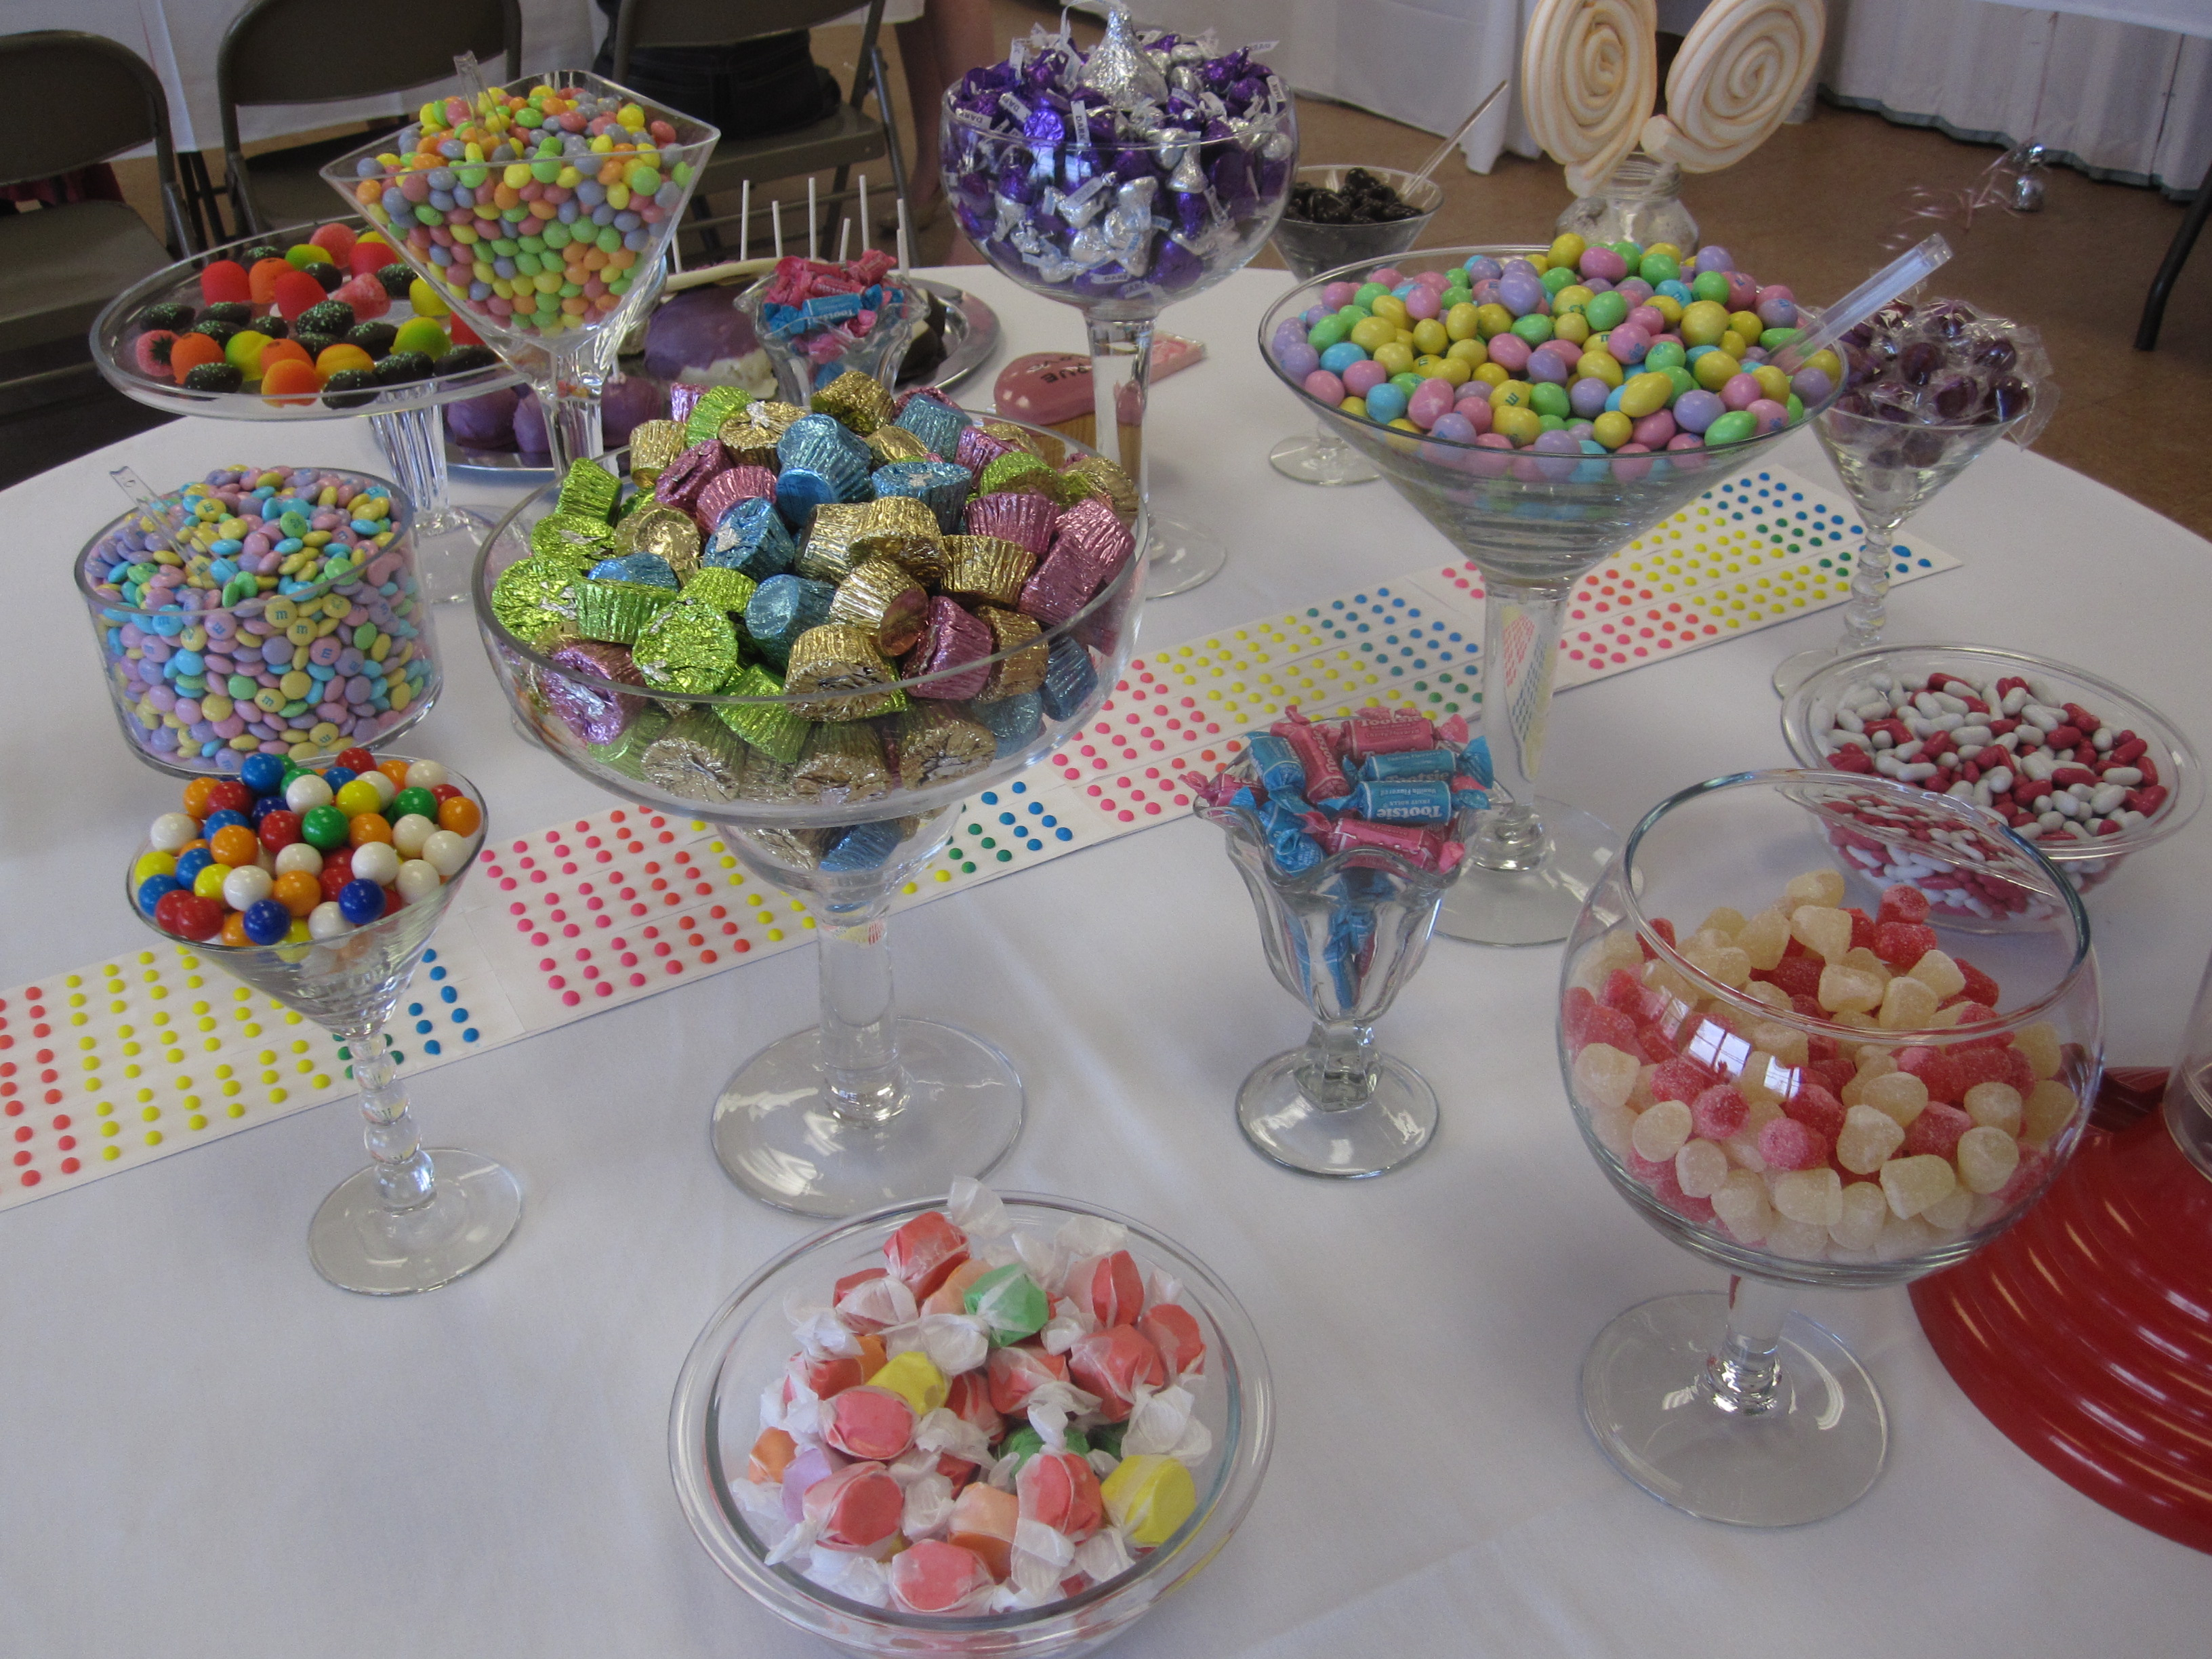 Candy and dessert tables